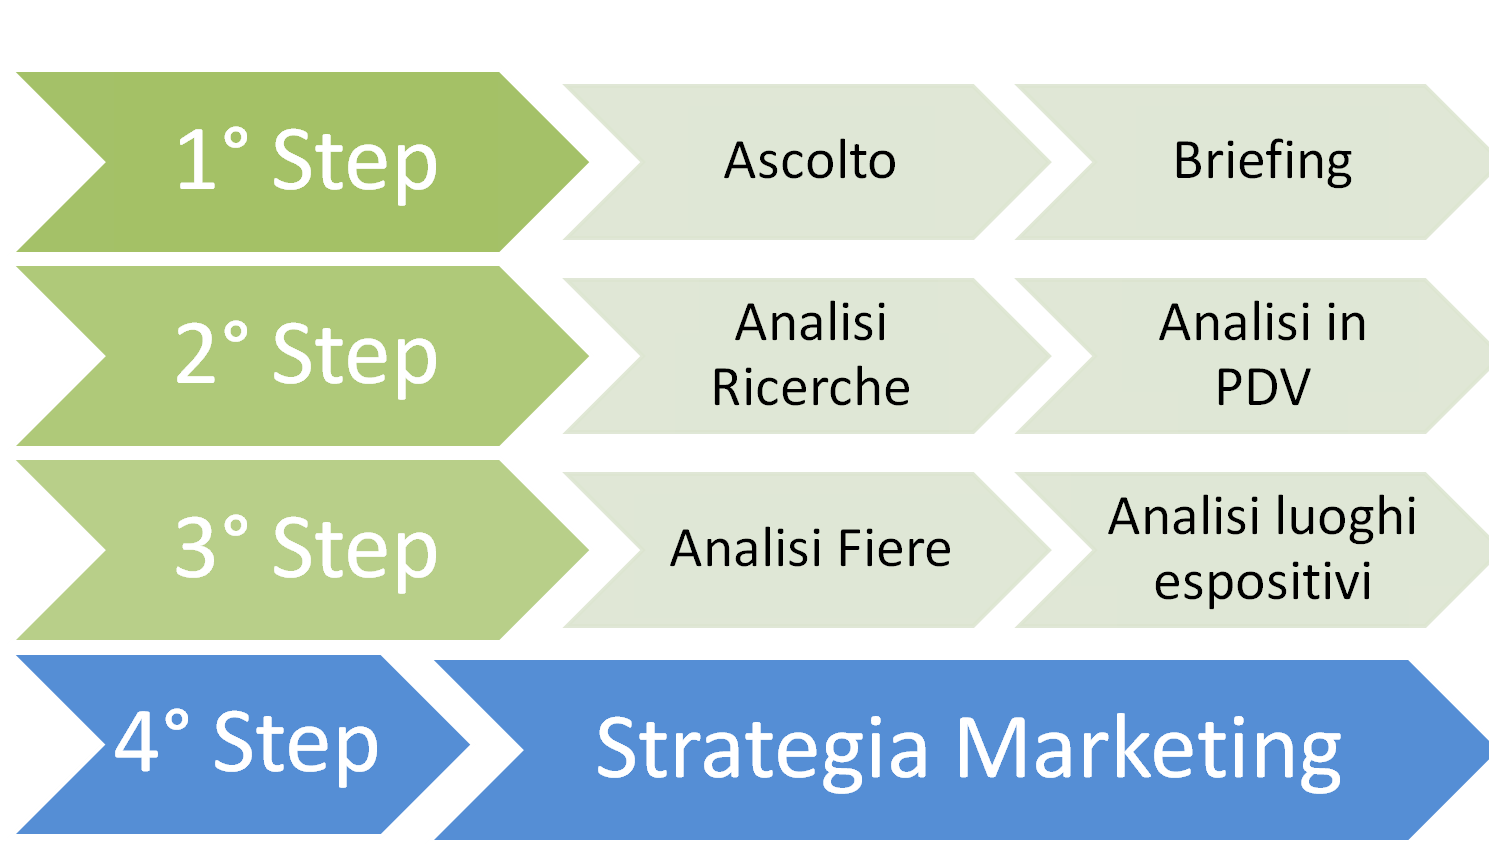 Posizionamento Commerciale Esempio Strategia Marketing